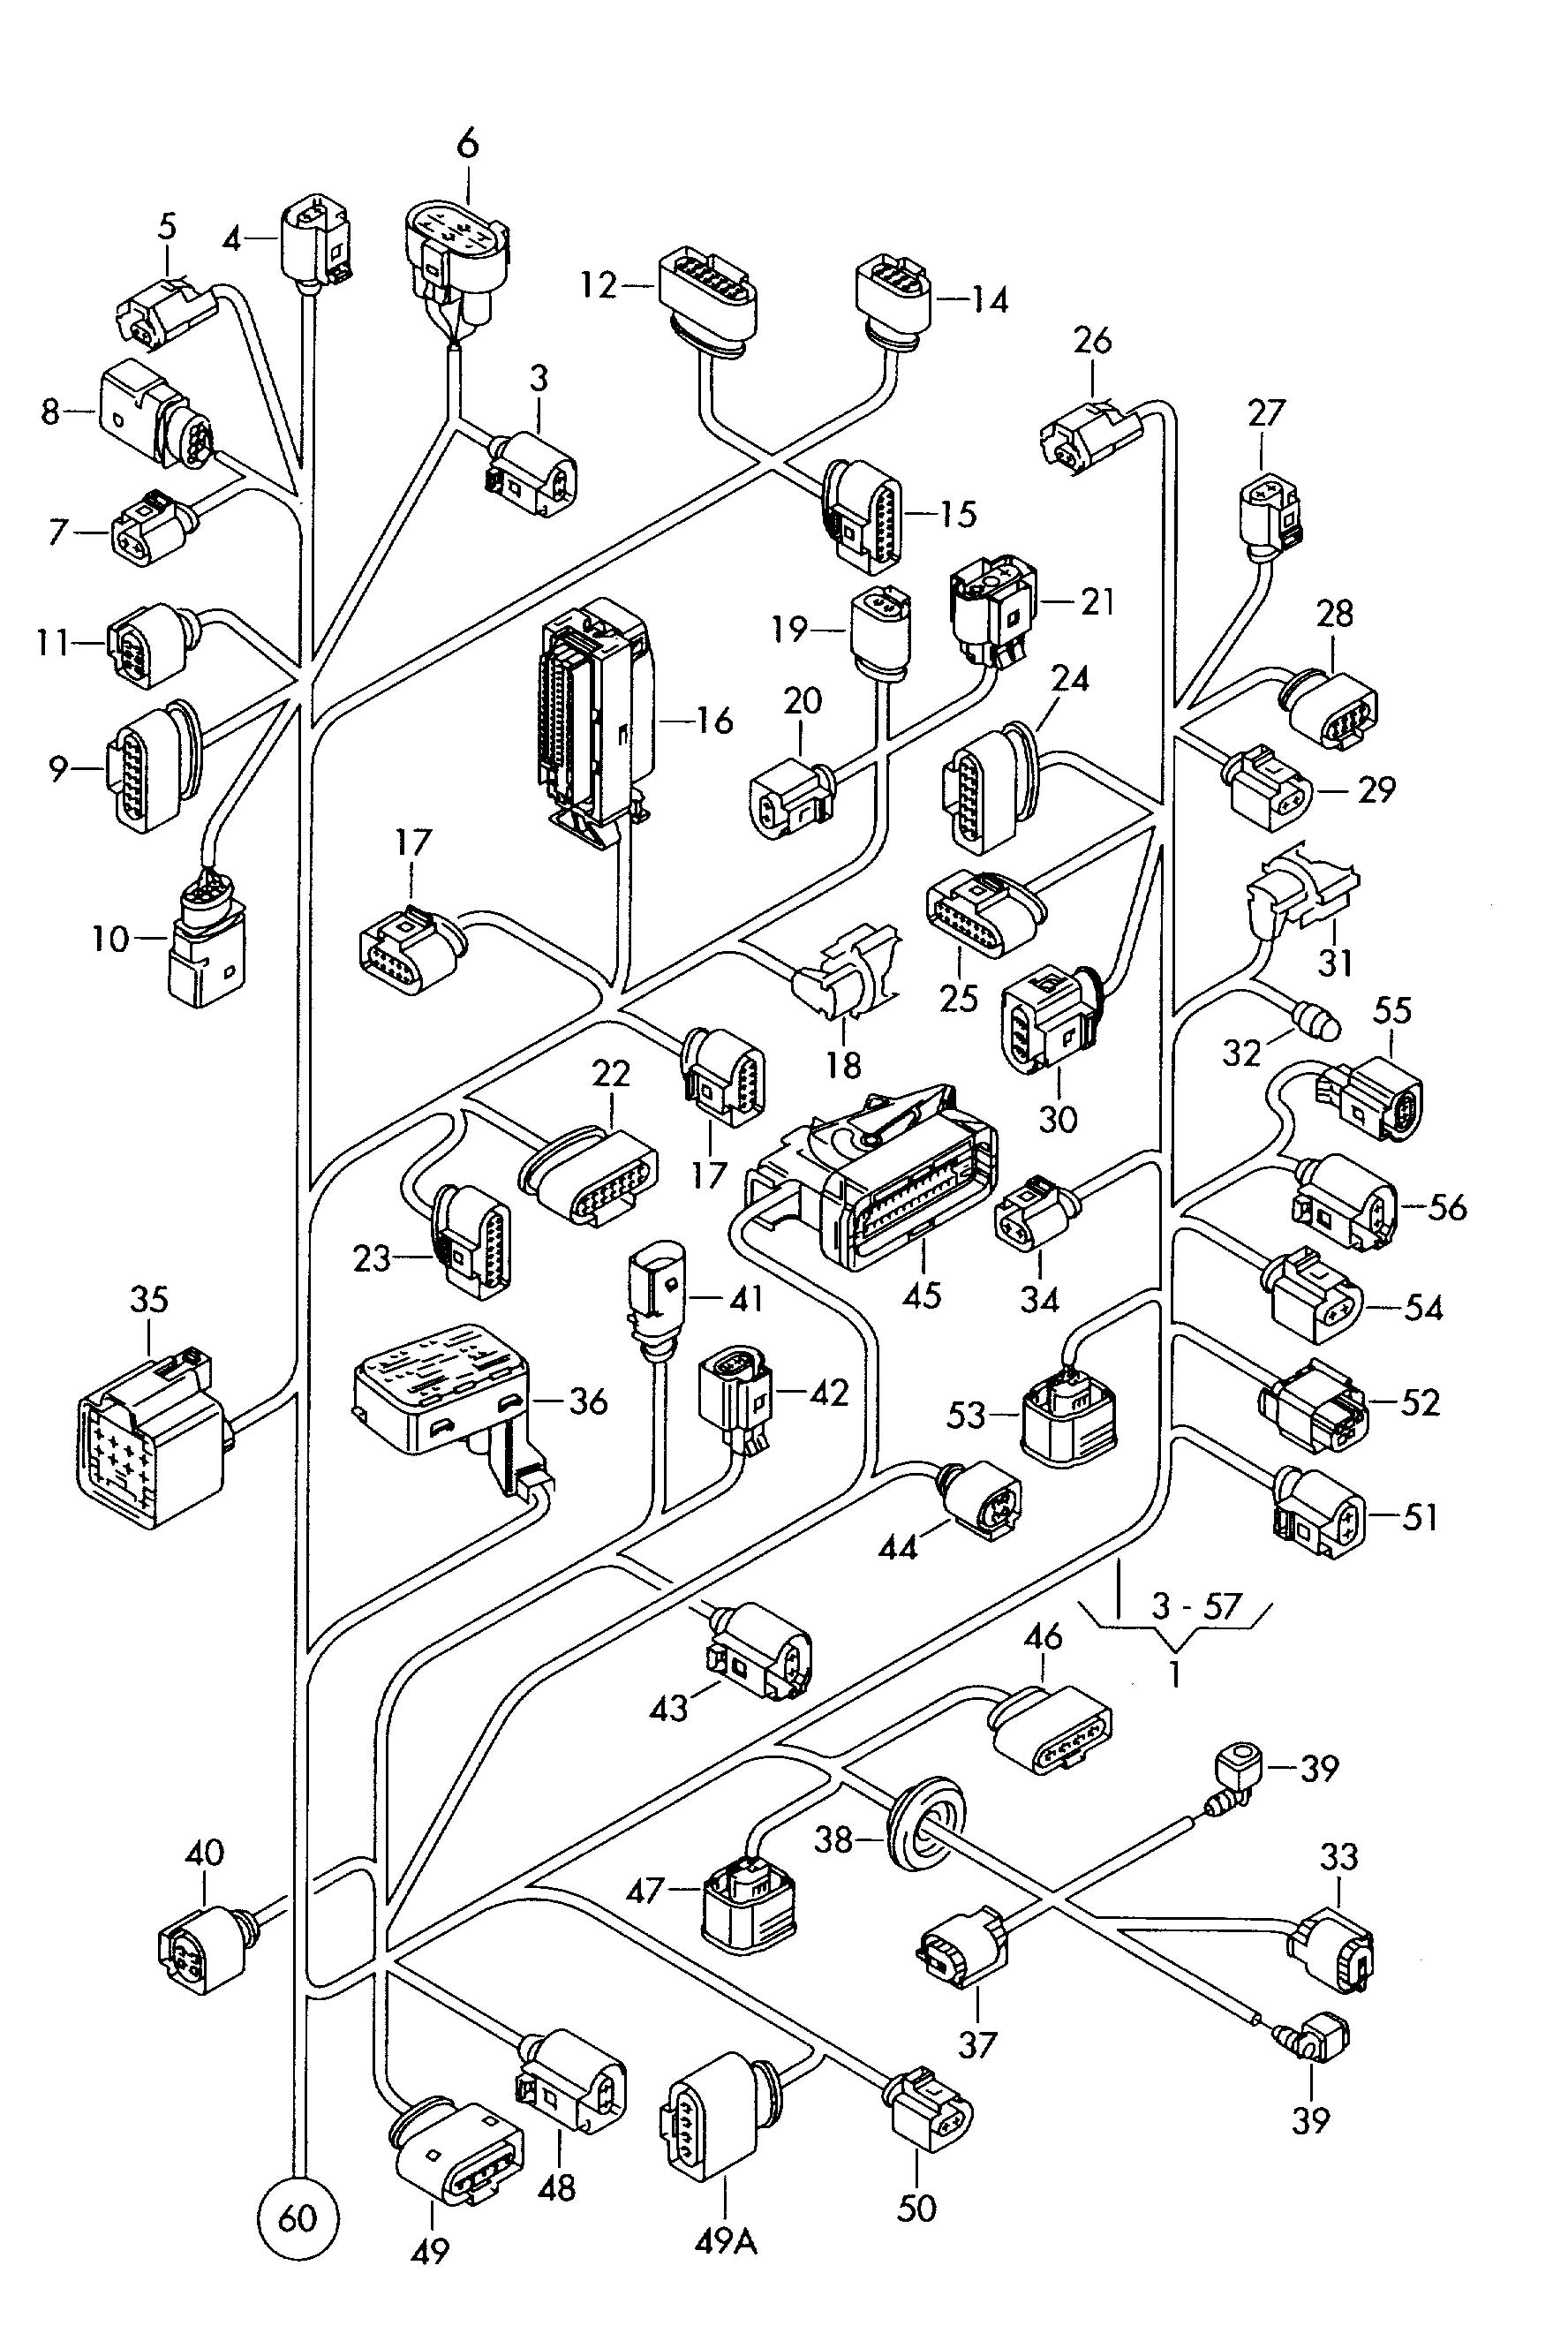 John Deere 5500 Fuse Panel Diagram Data Schema Combine Box 2005 Gmc Free Engine Image For User 5320 Coloring Pages